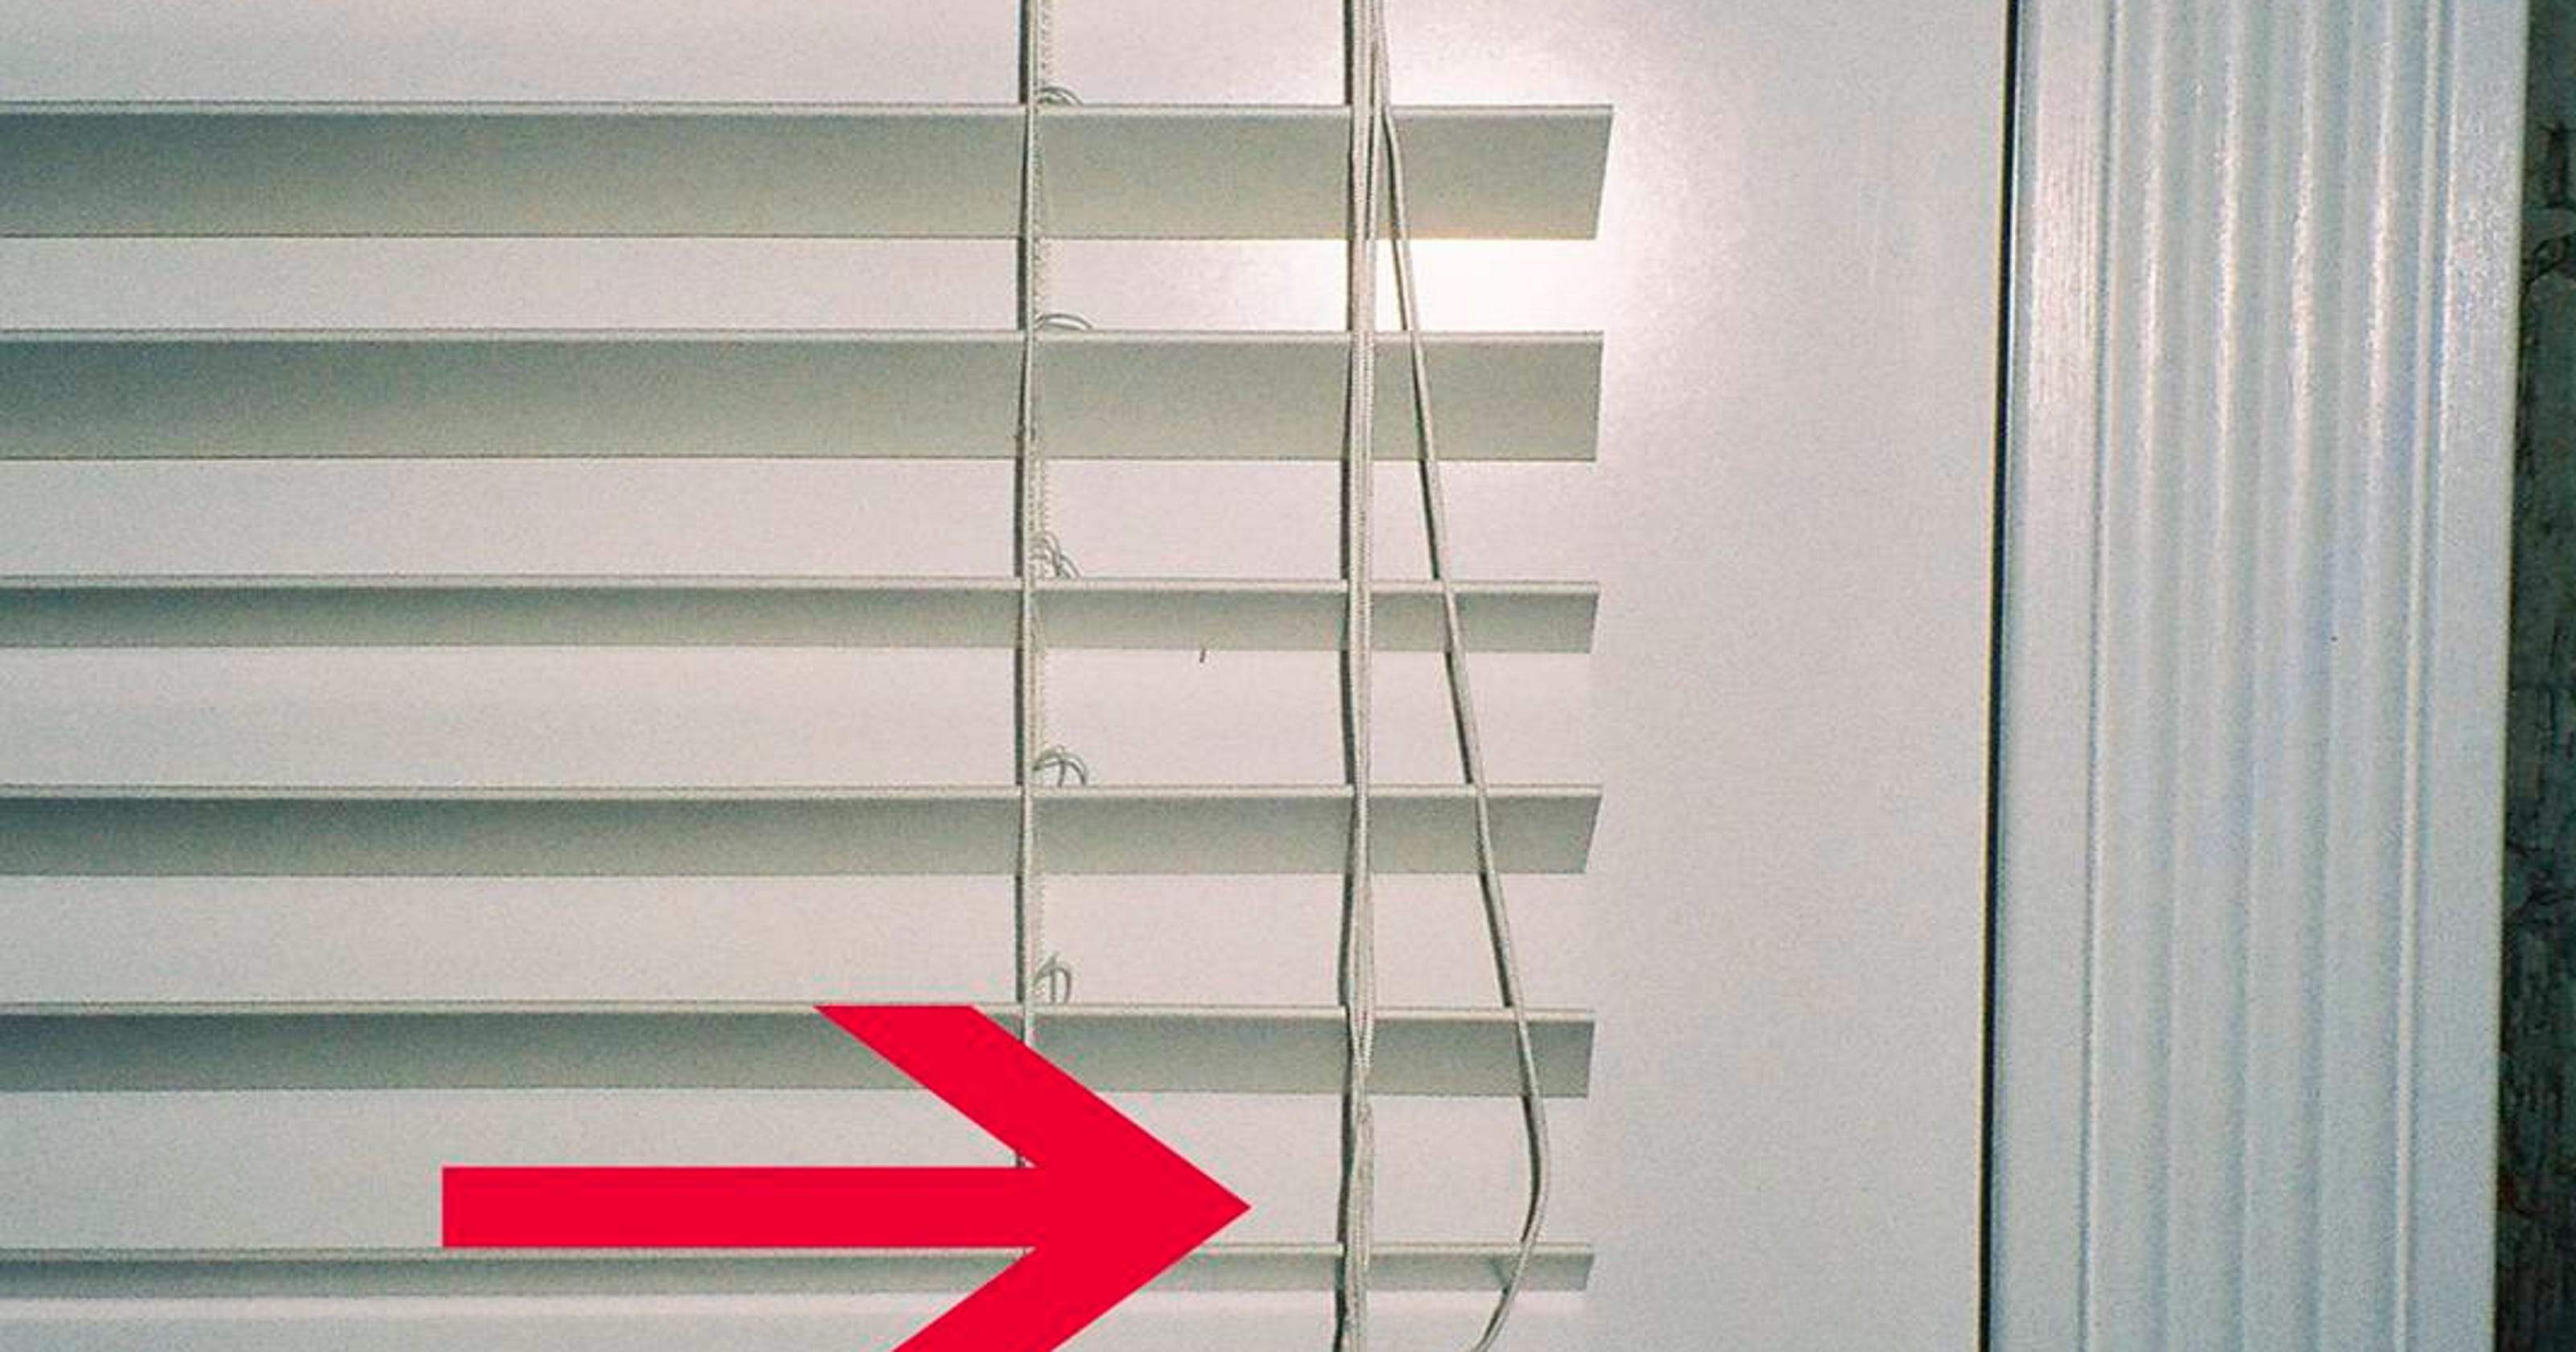 Corded Blinds Safety Standard To Protect Kids To Take